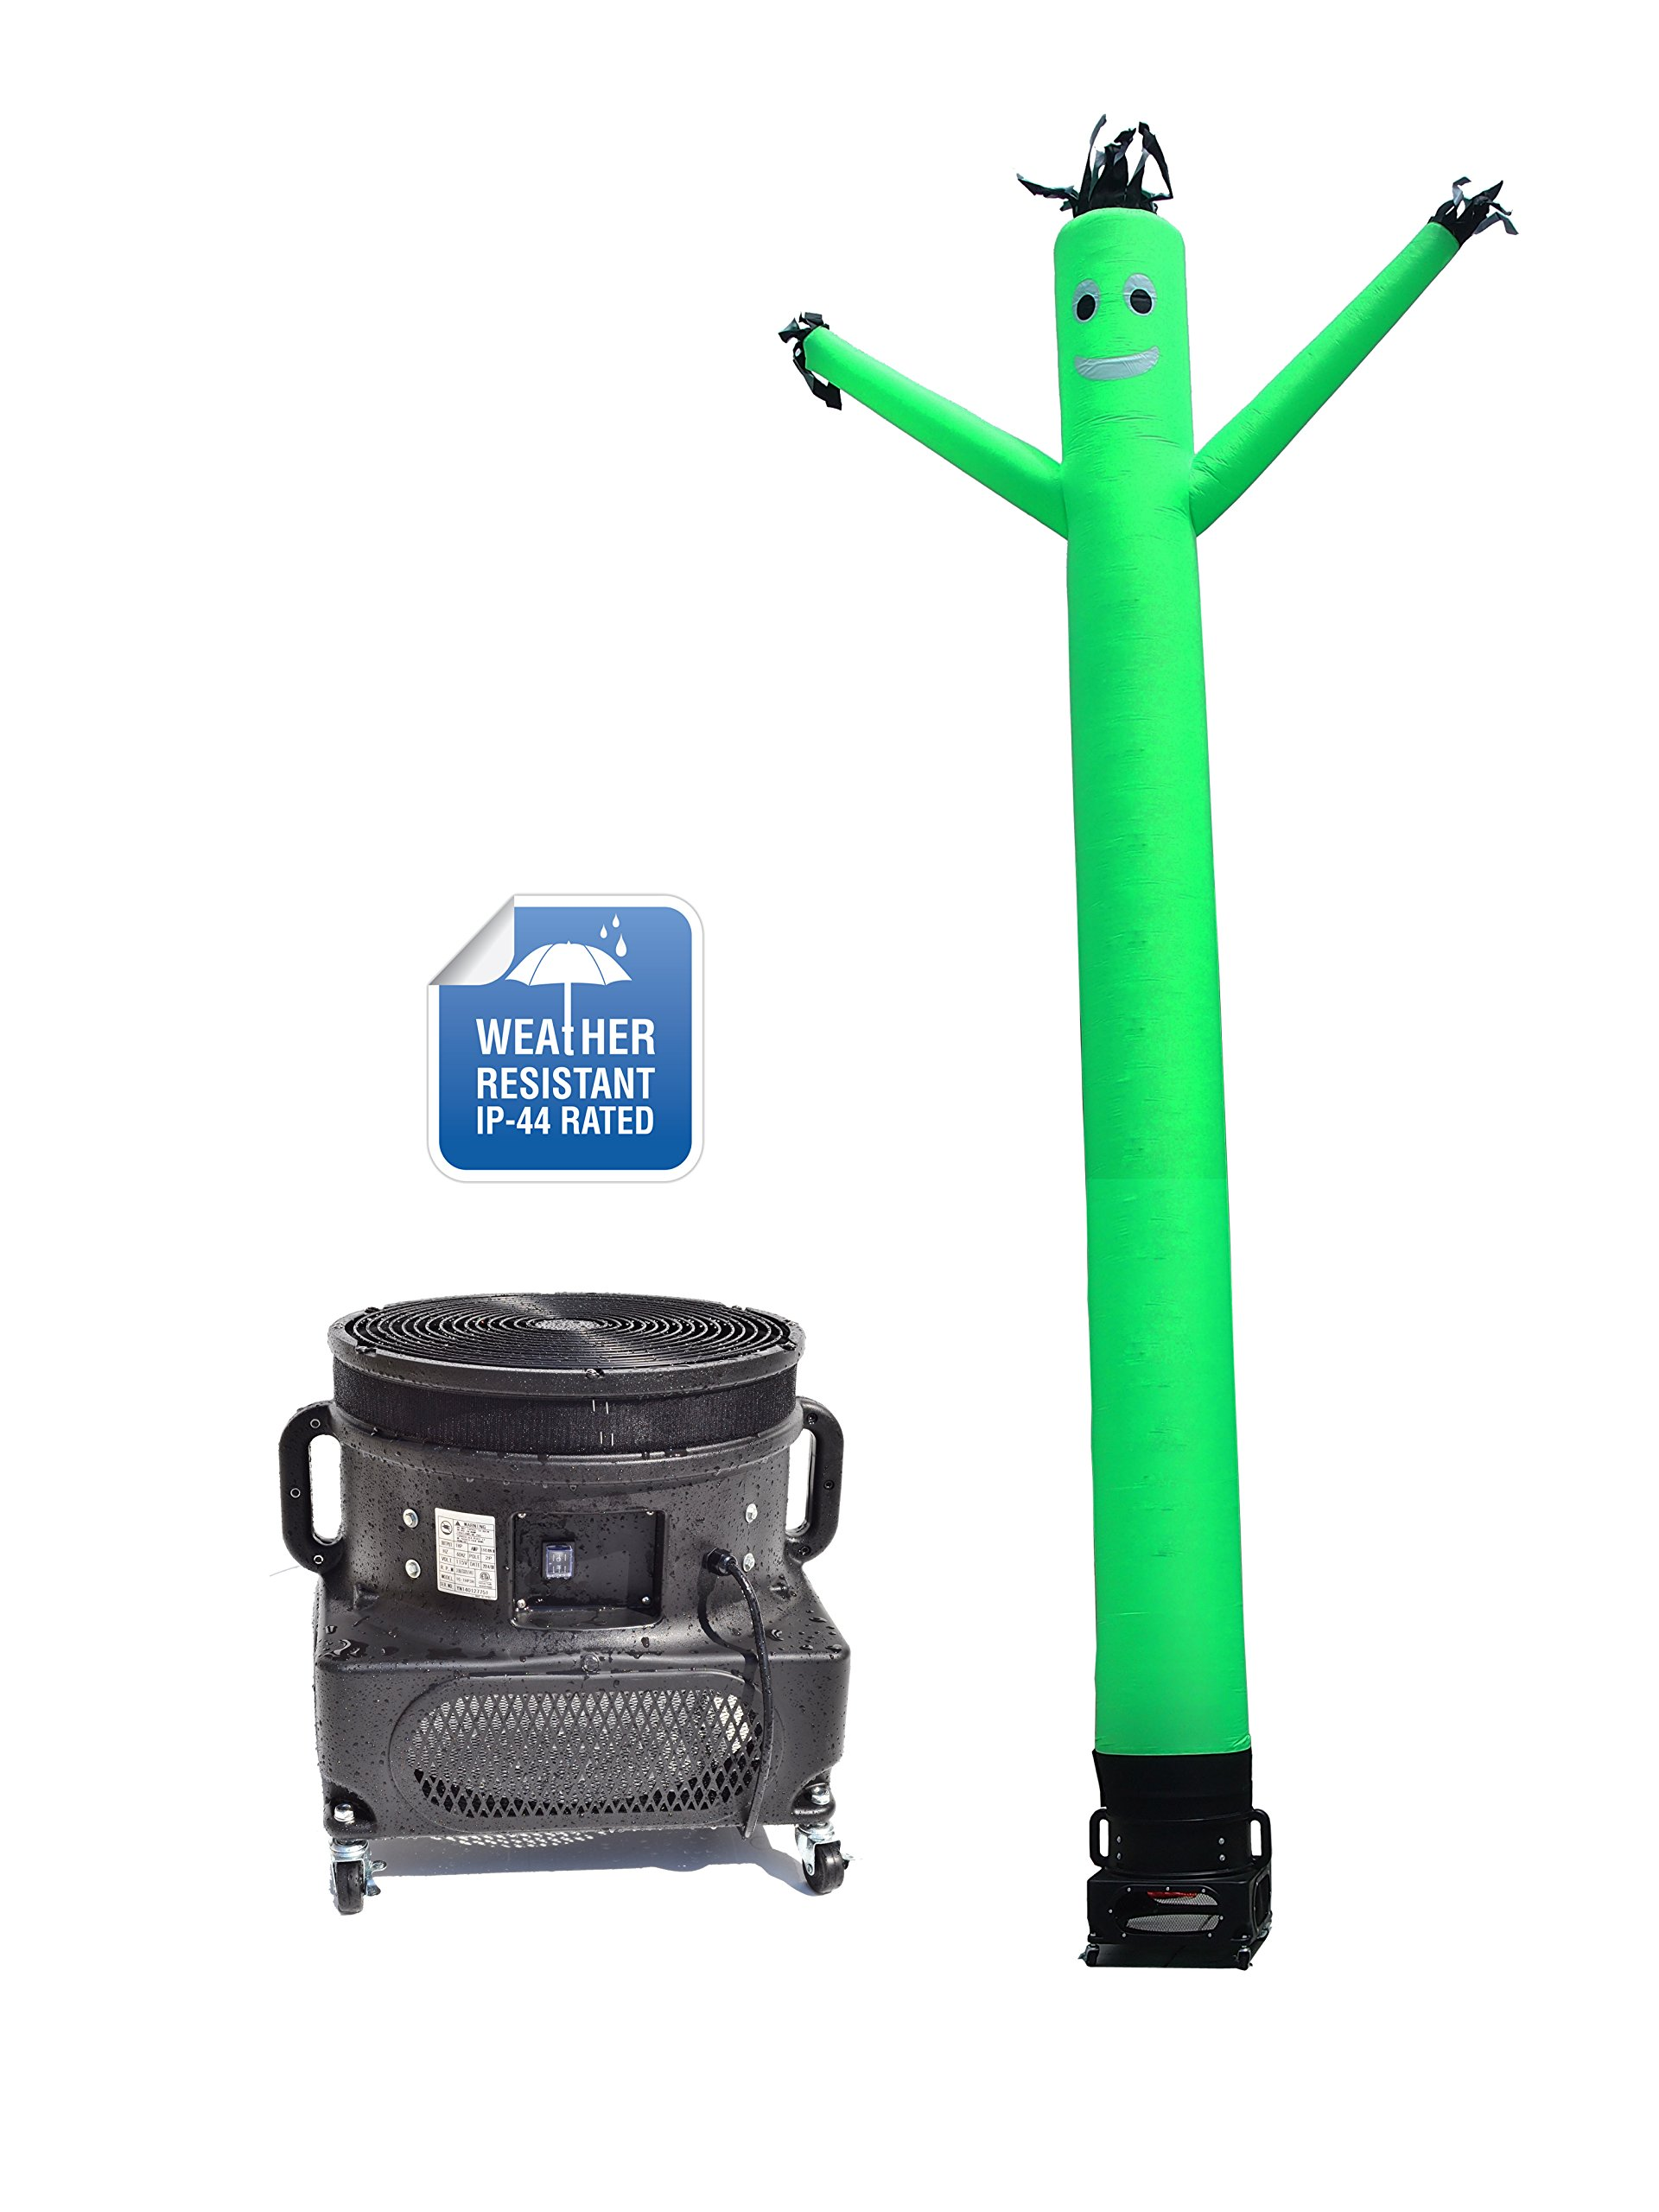 LookOurWay Air Dancers Inflatable Tube Man Complete Set with 1 HP Weather-Resistant Sky Dancer Blower, 20-Feet, Green